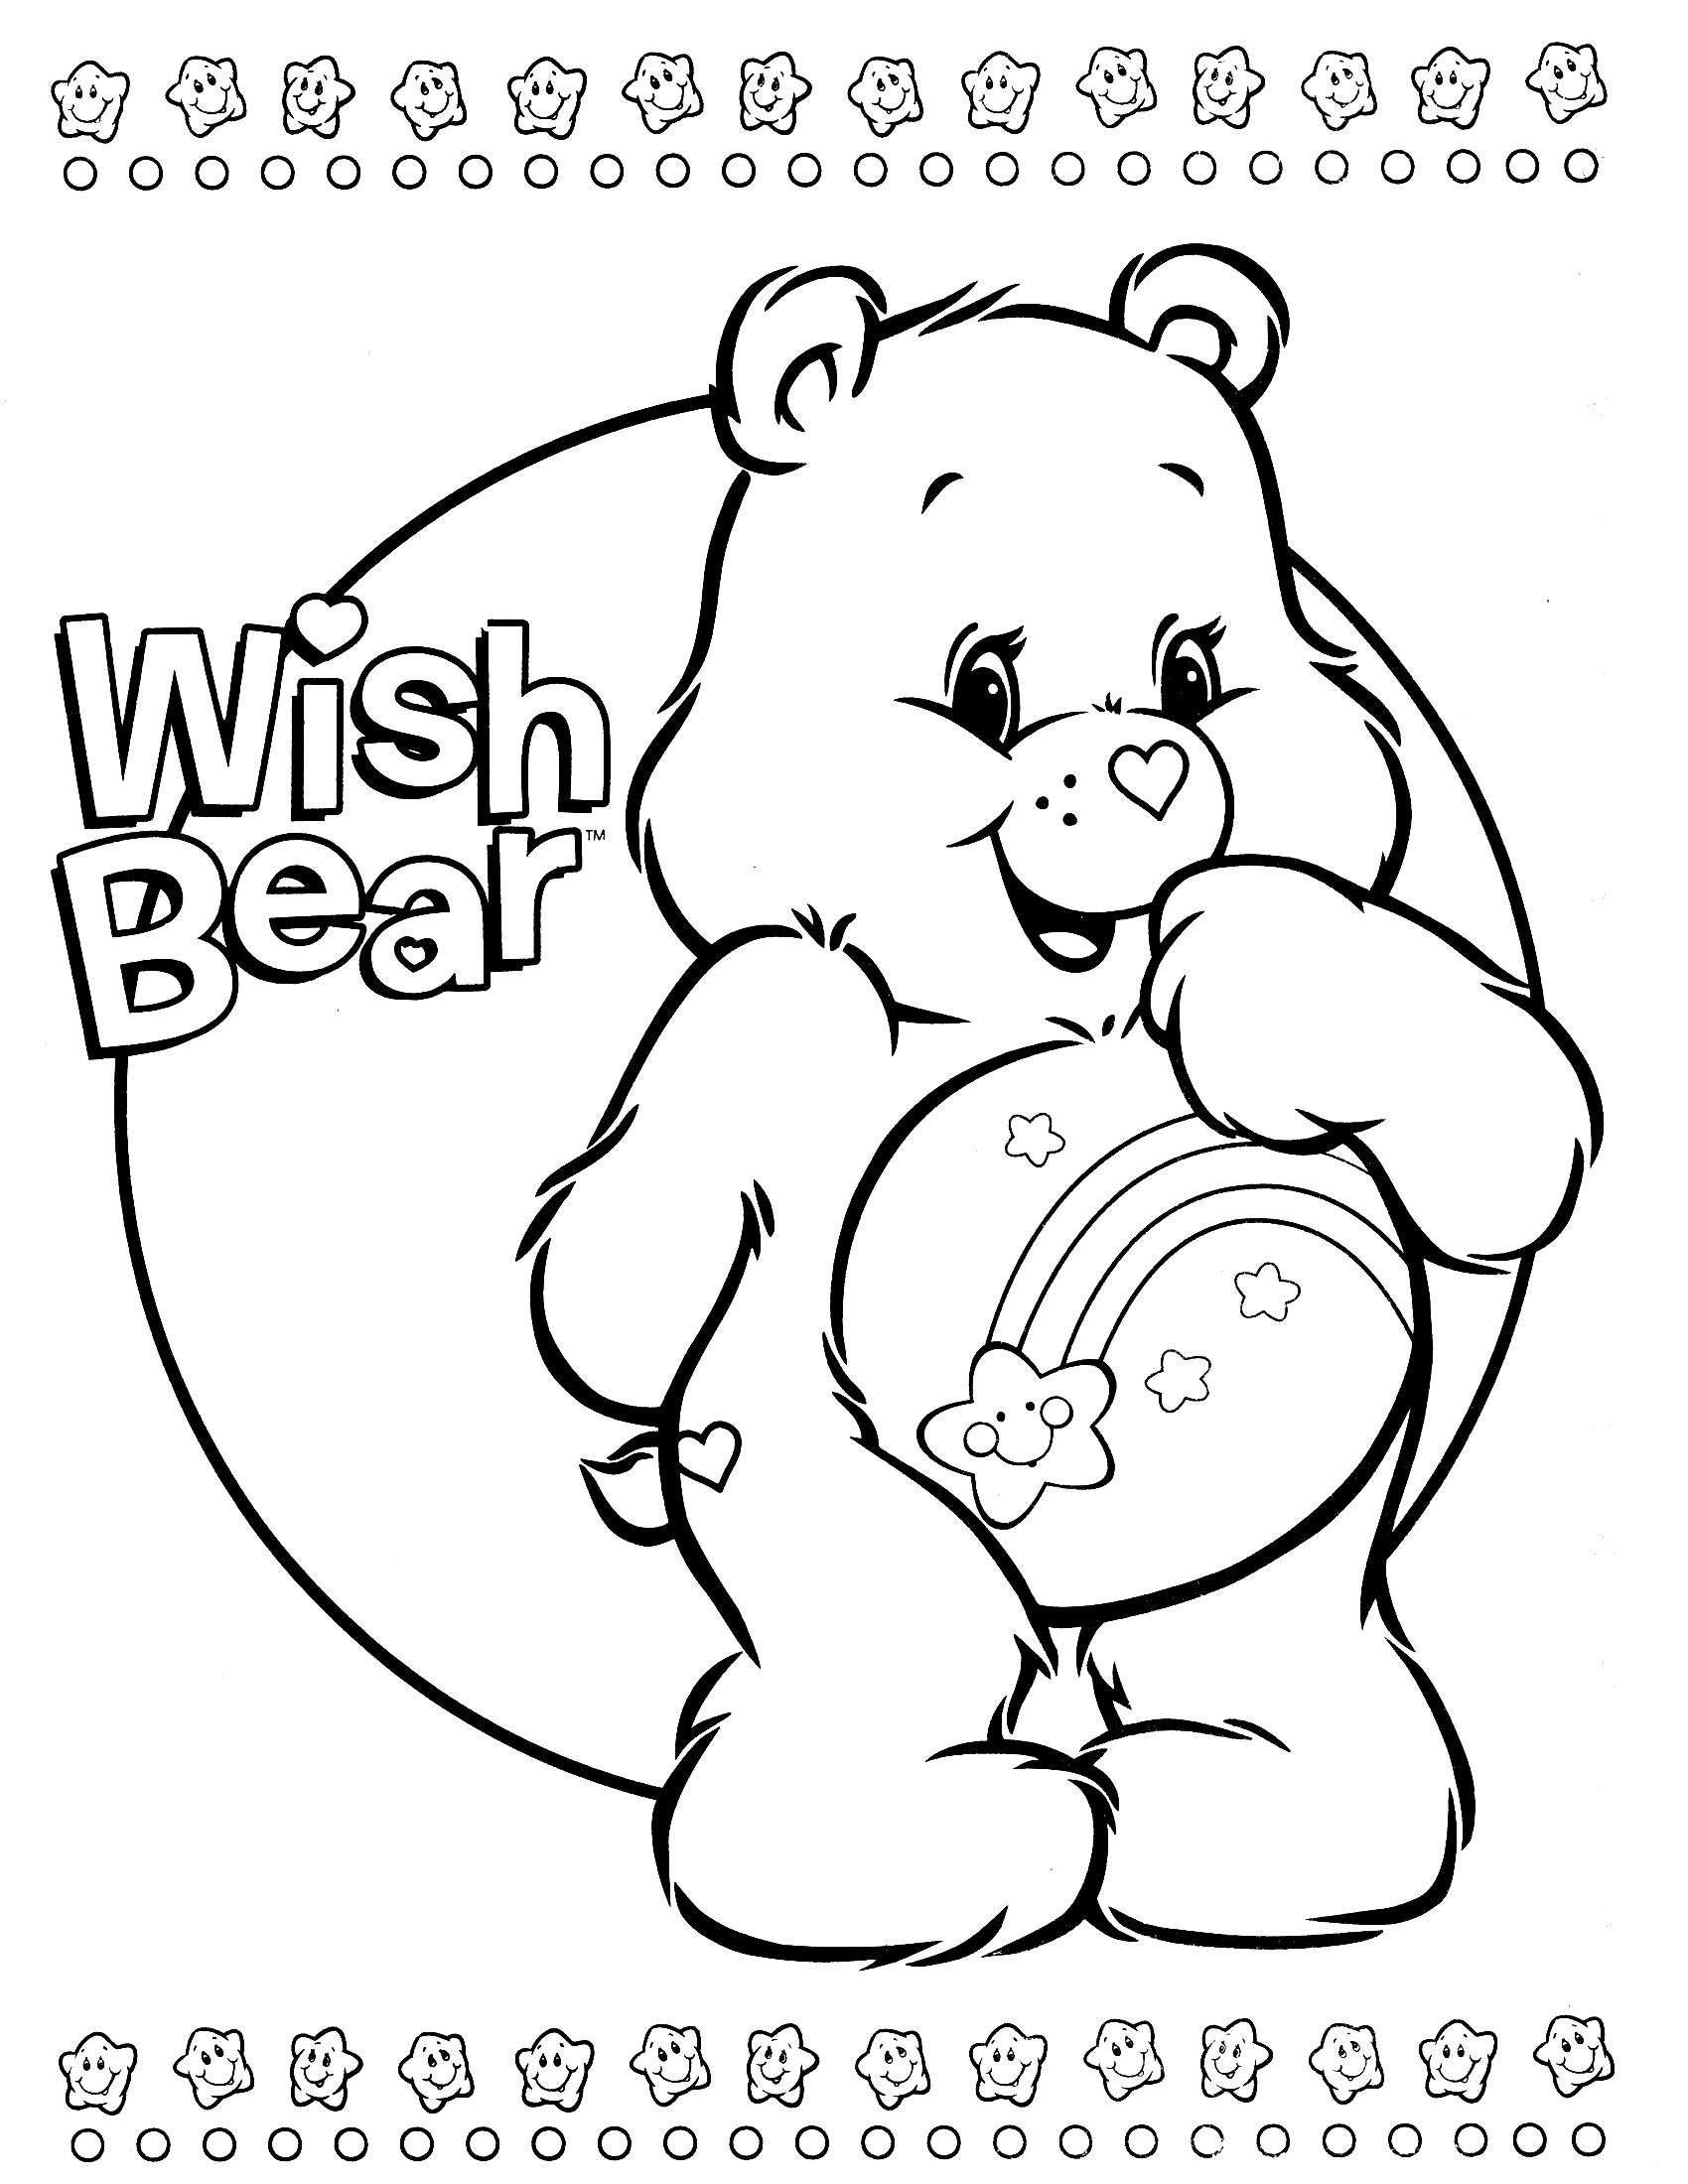 Care Bears Coloring Page Bear Coloring Pages Disney Coloring